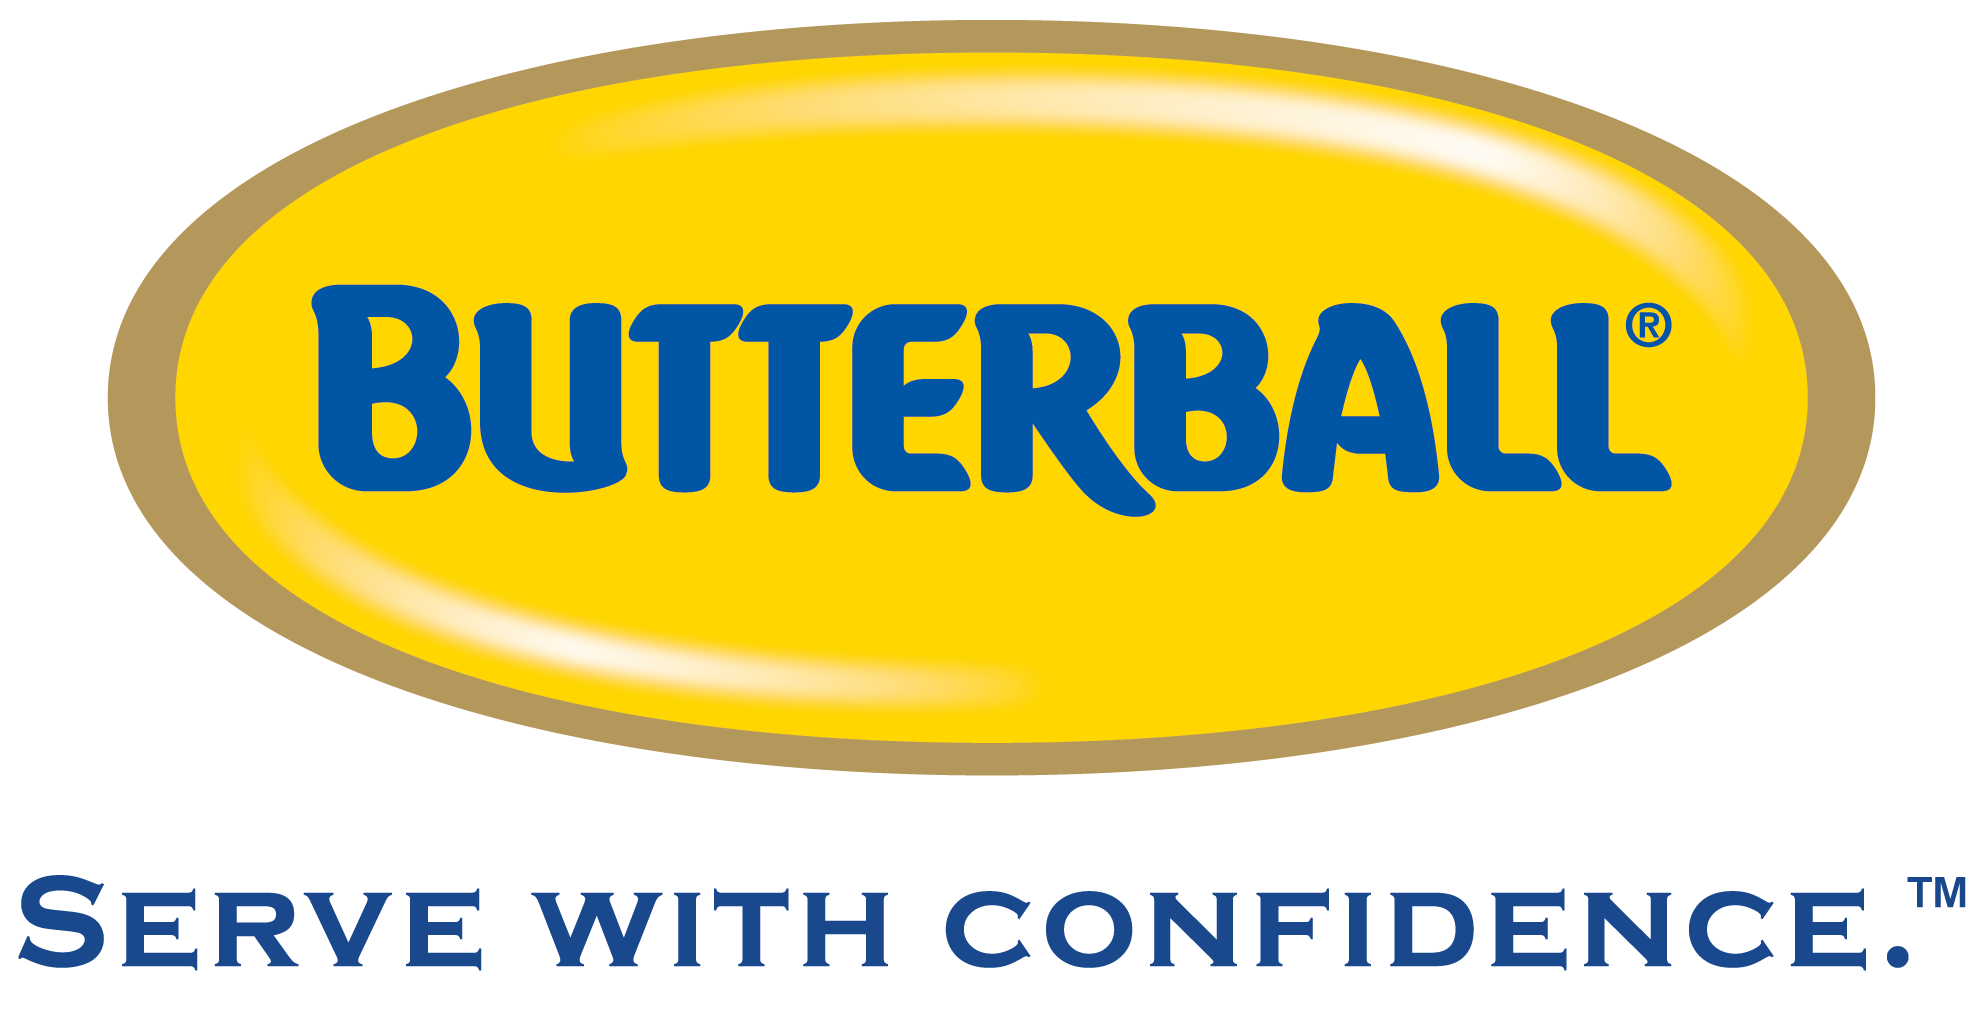 Butterball Foodservice